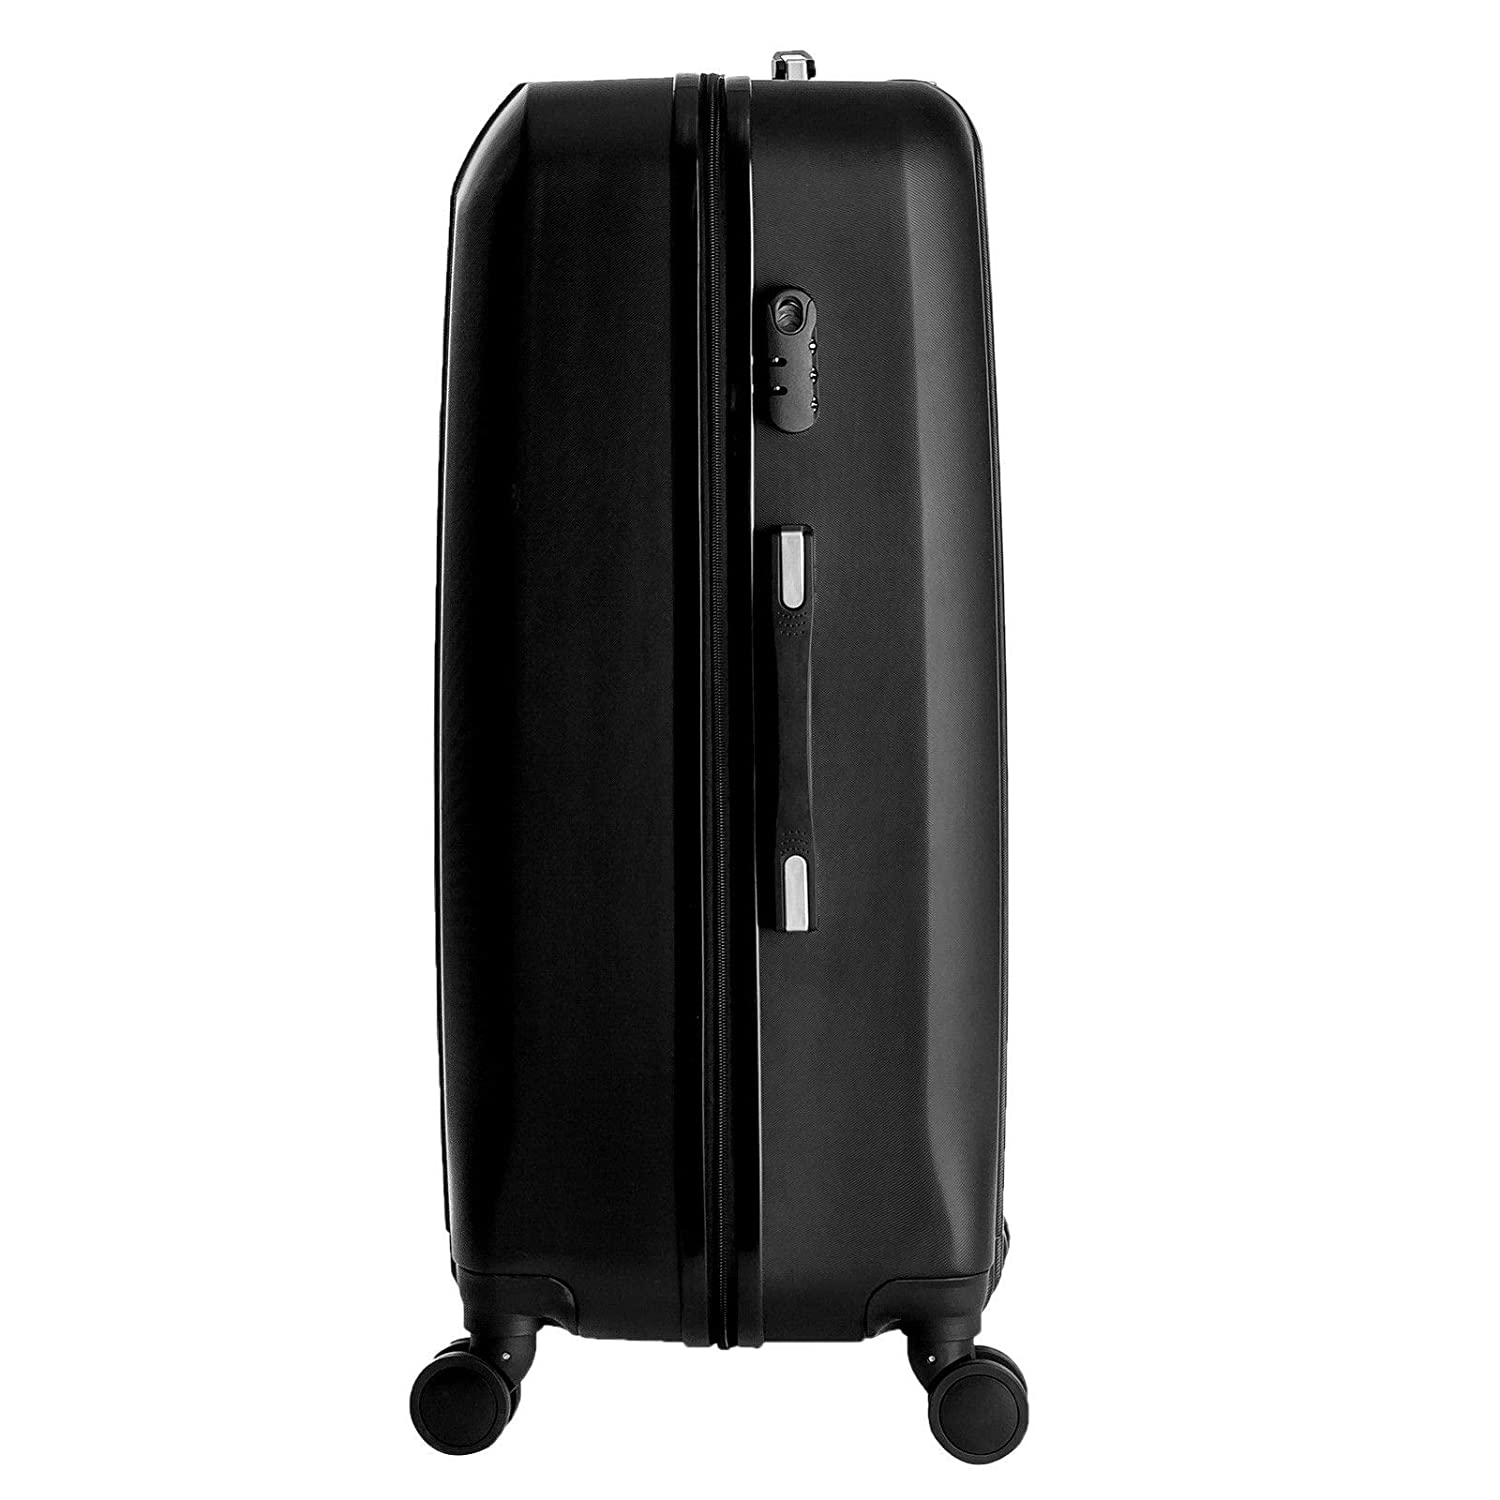 US Best Traveler Only 5 Sets Left Nice1159 New 4 pcs Travel Spinner Luggage Set Bag ABS Trolley Carry On Suitcase Black